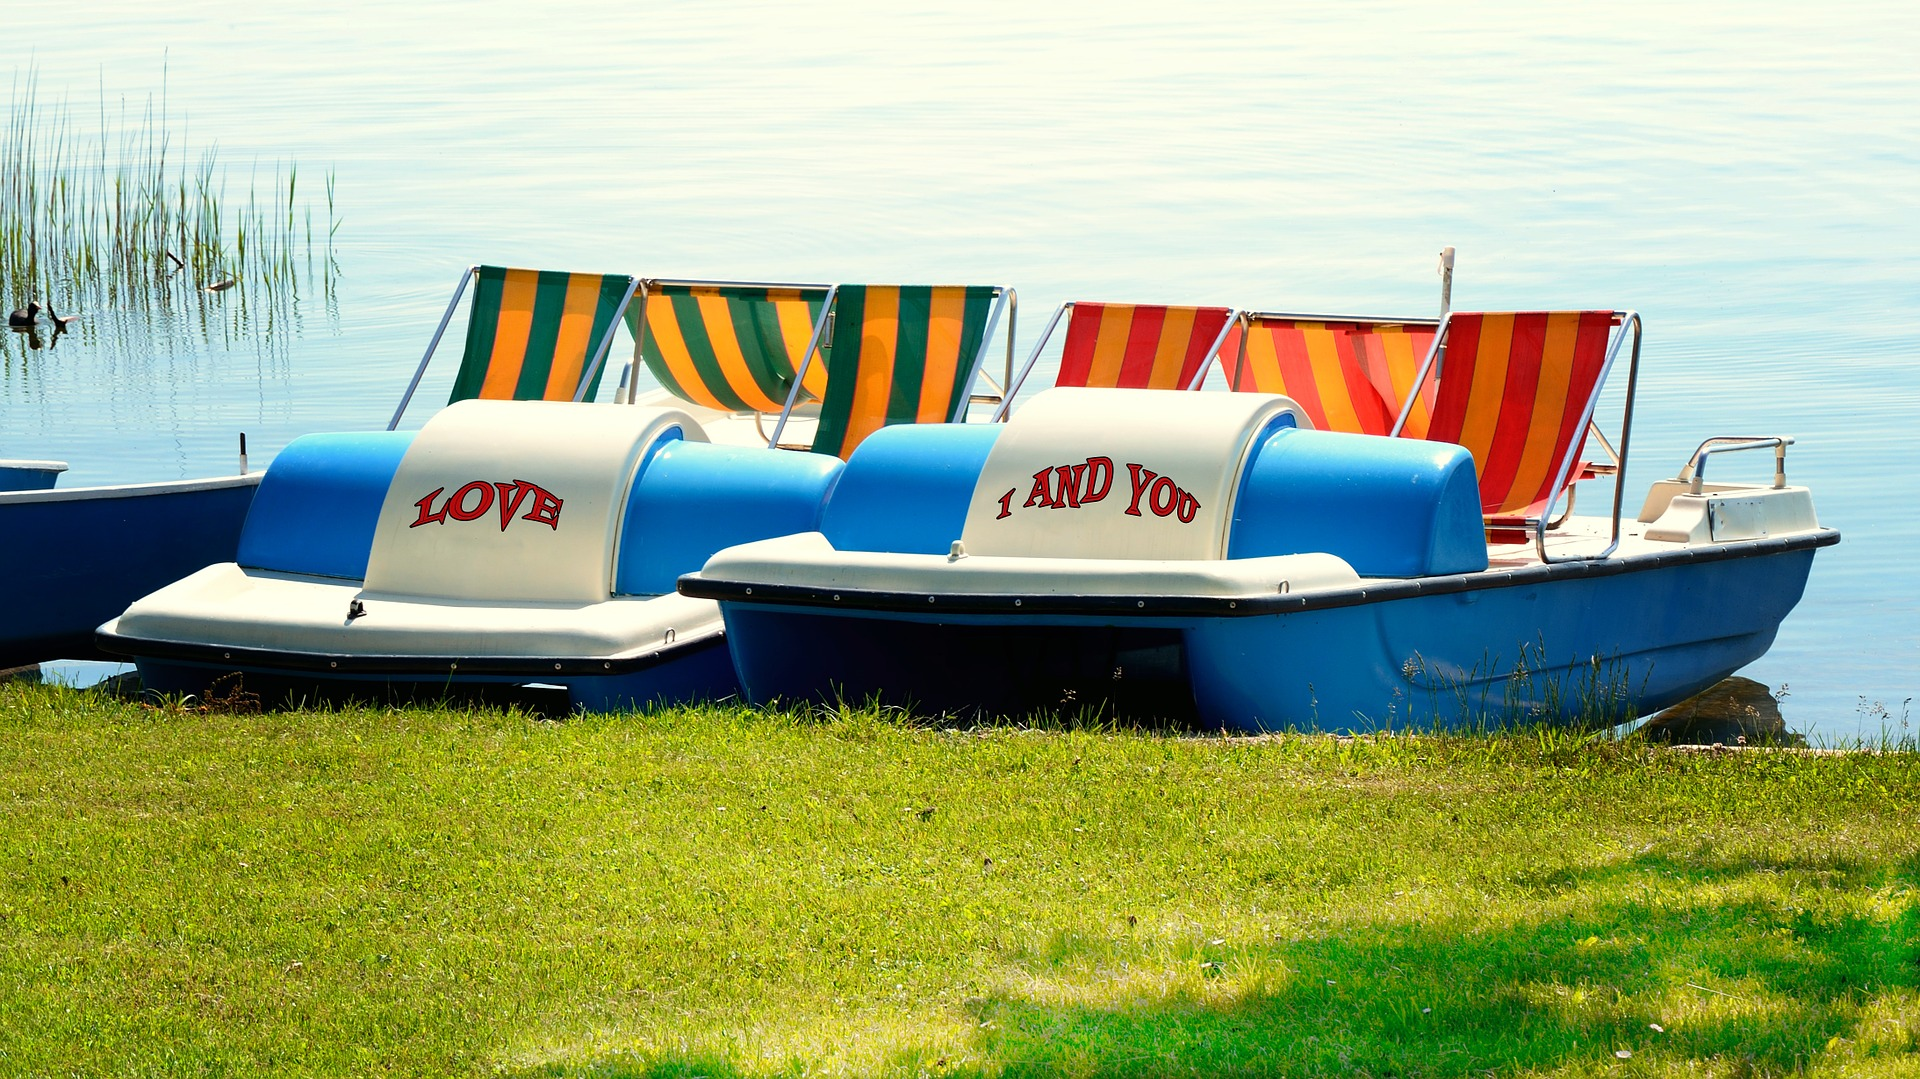 pedal-boats-796455_1920